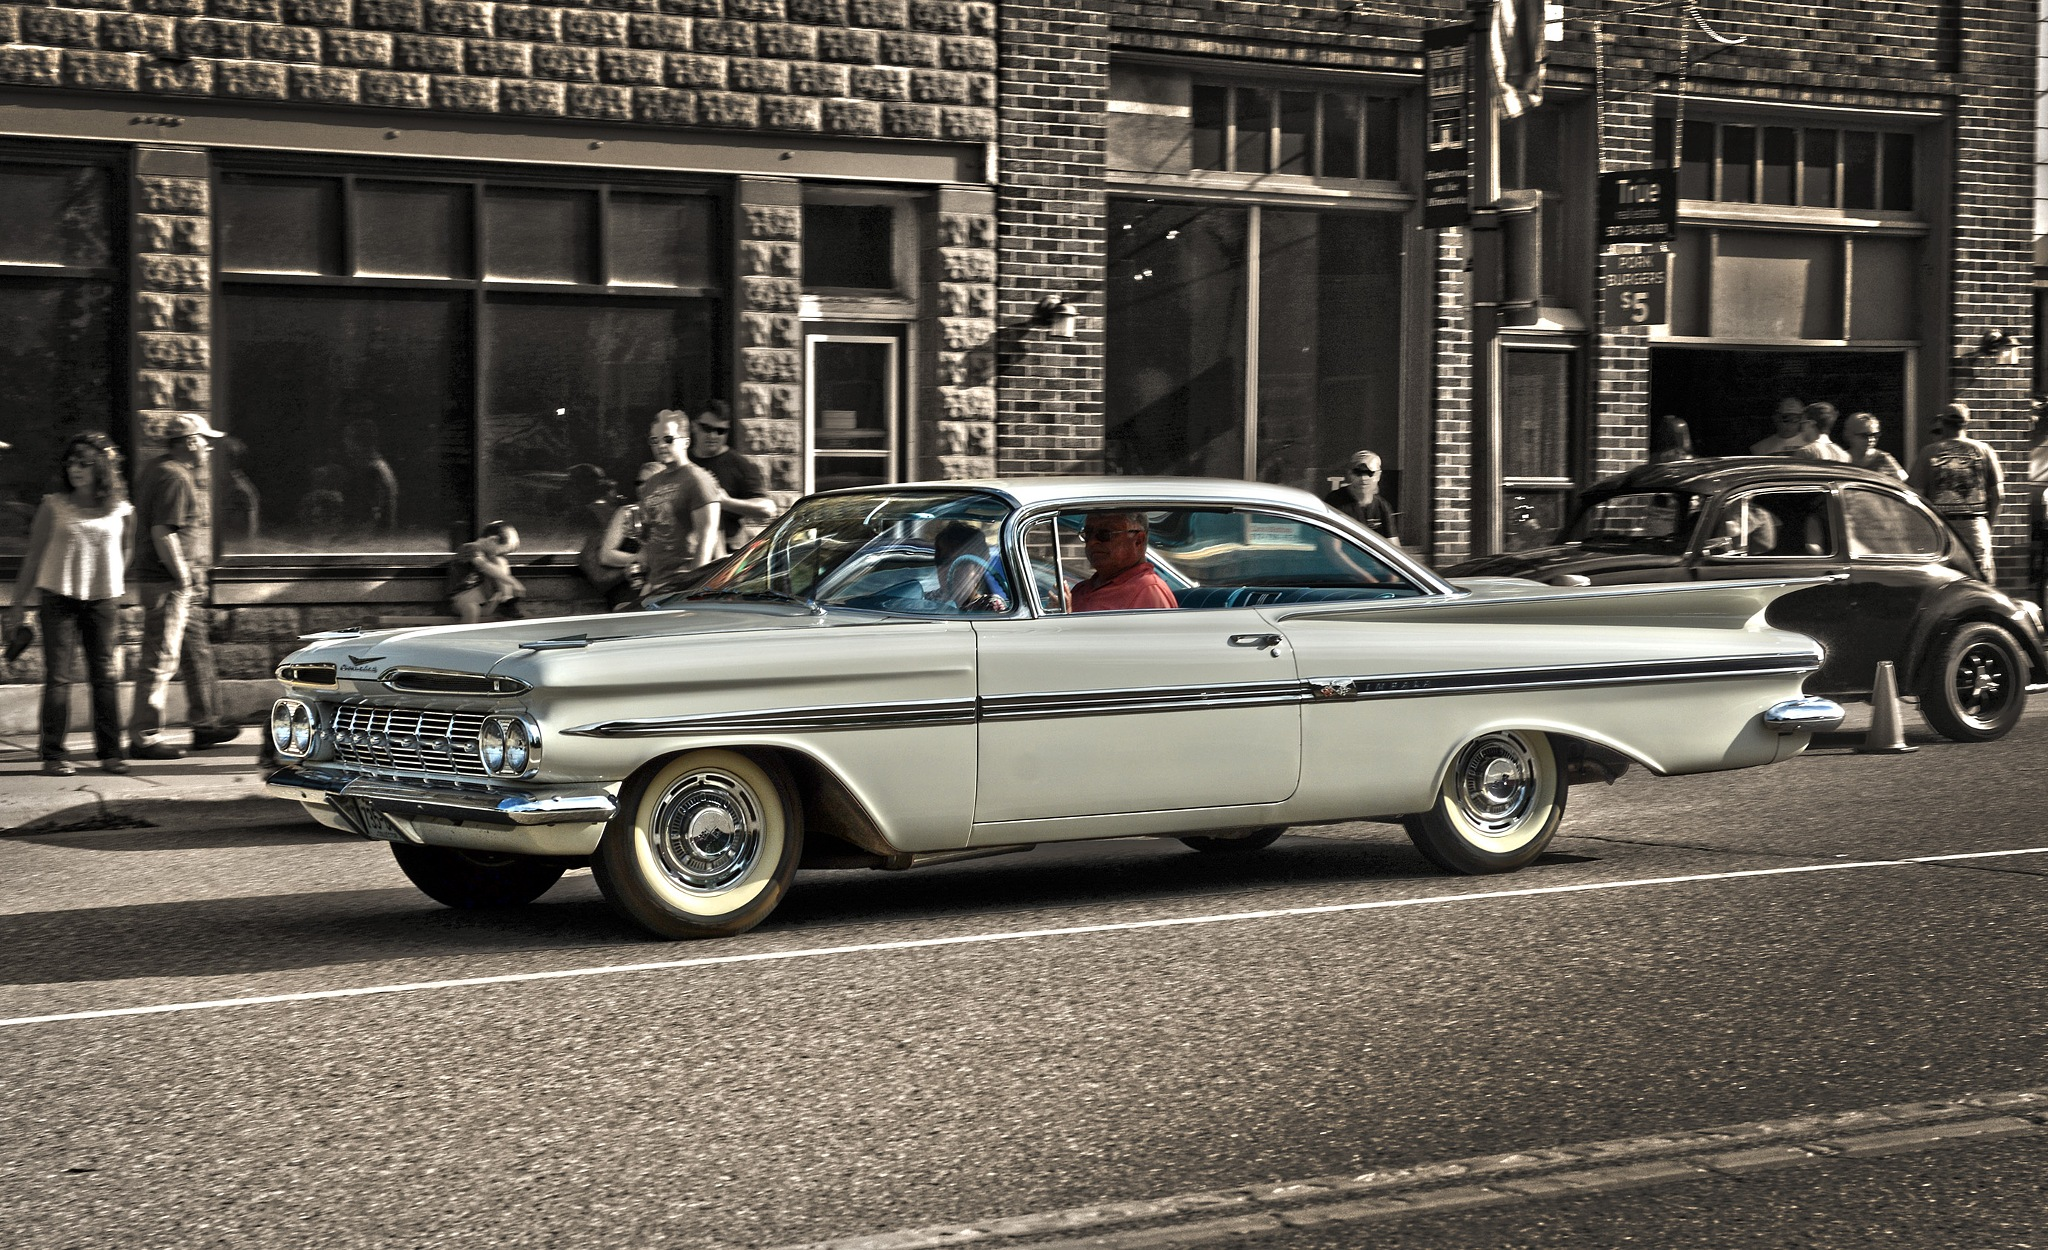 1959 Chevrolet Impala by Linda Persson